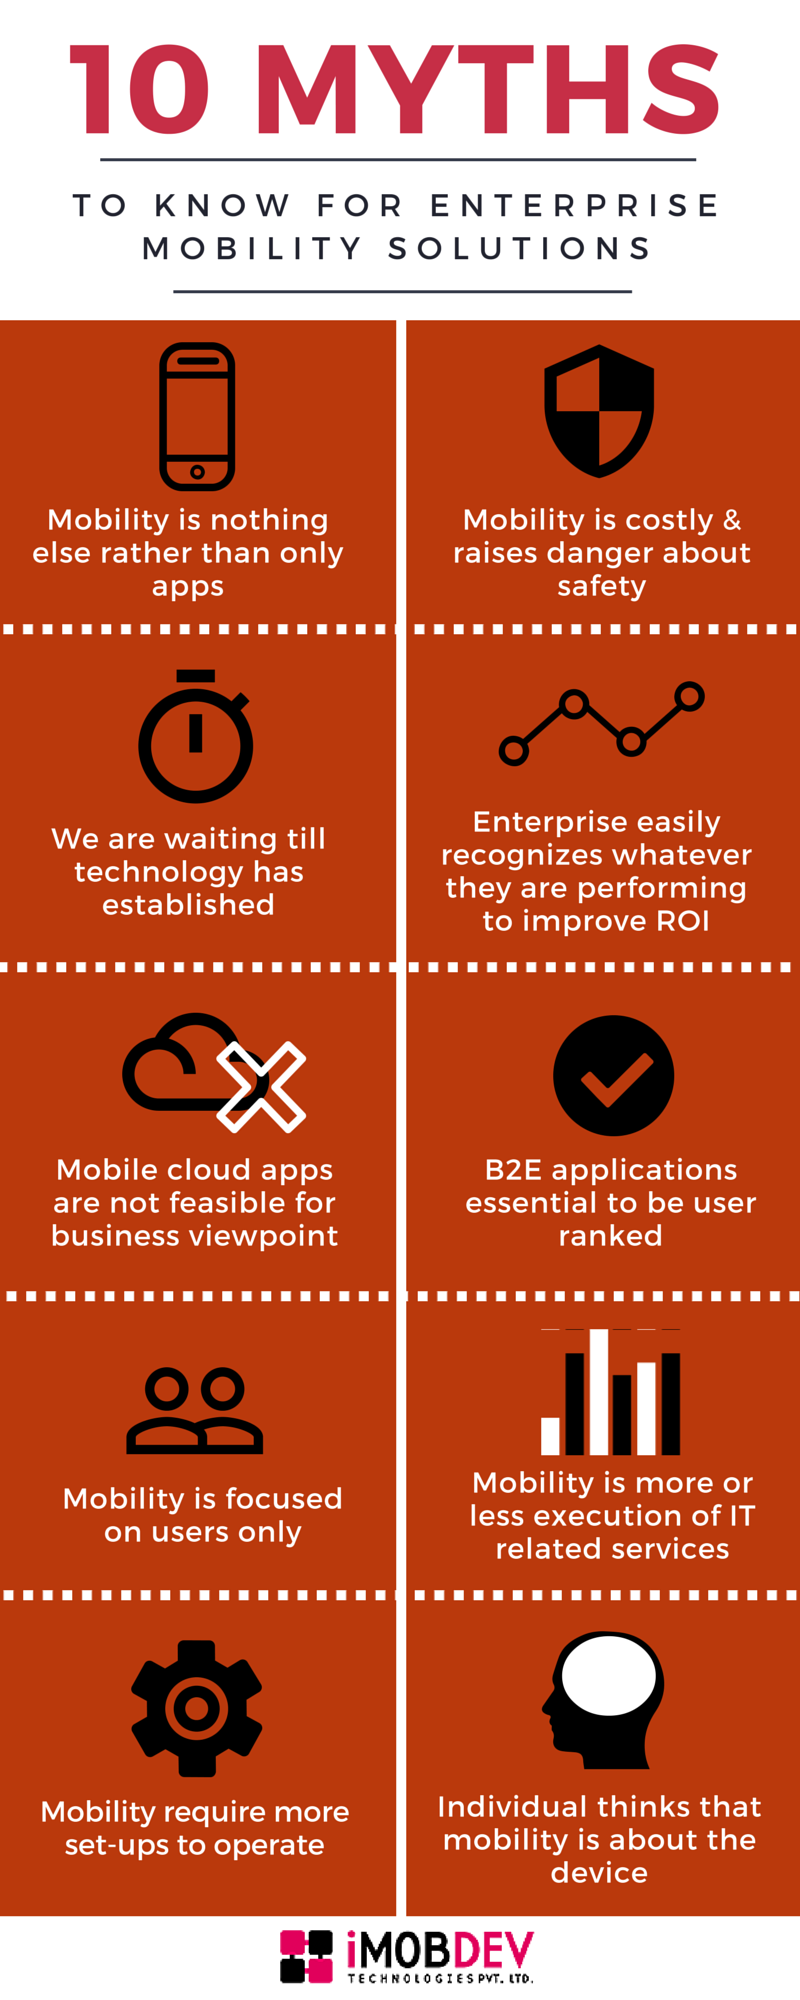 Do you know Common Myths of enterprise mobility solutions? - Image 2